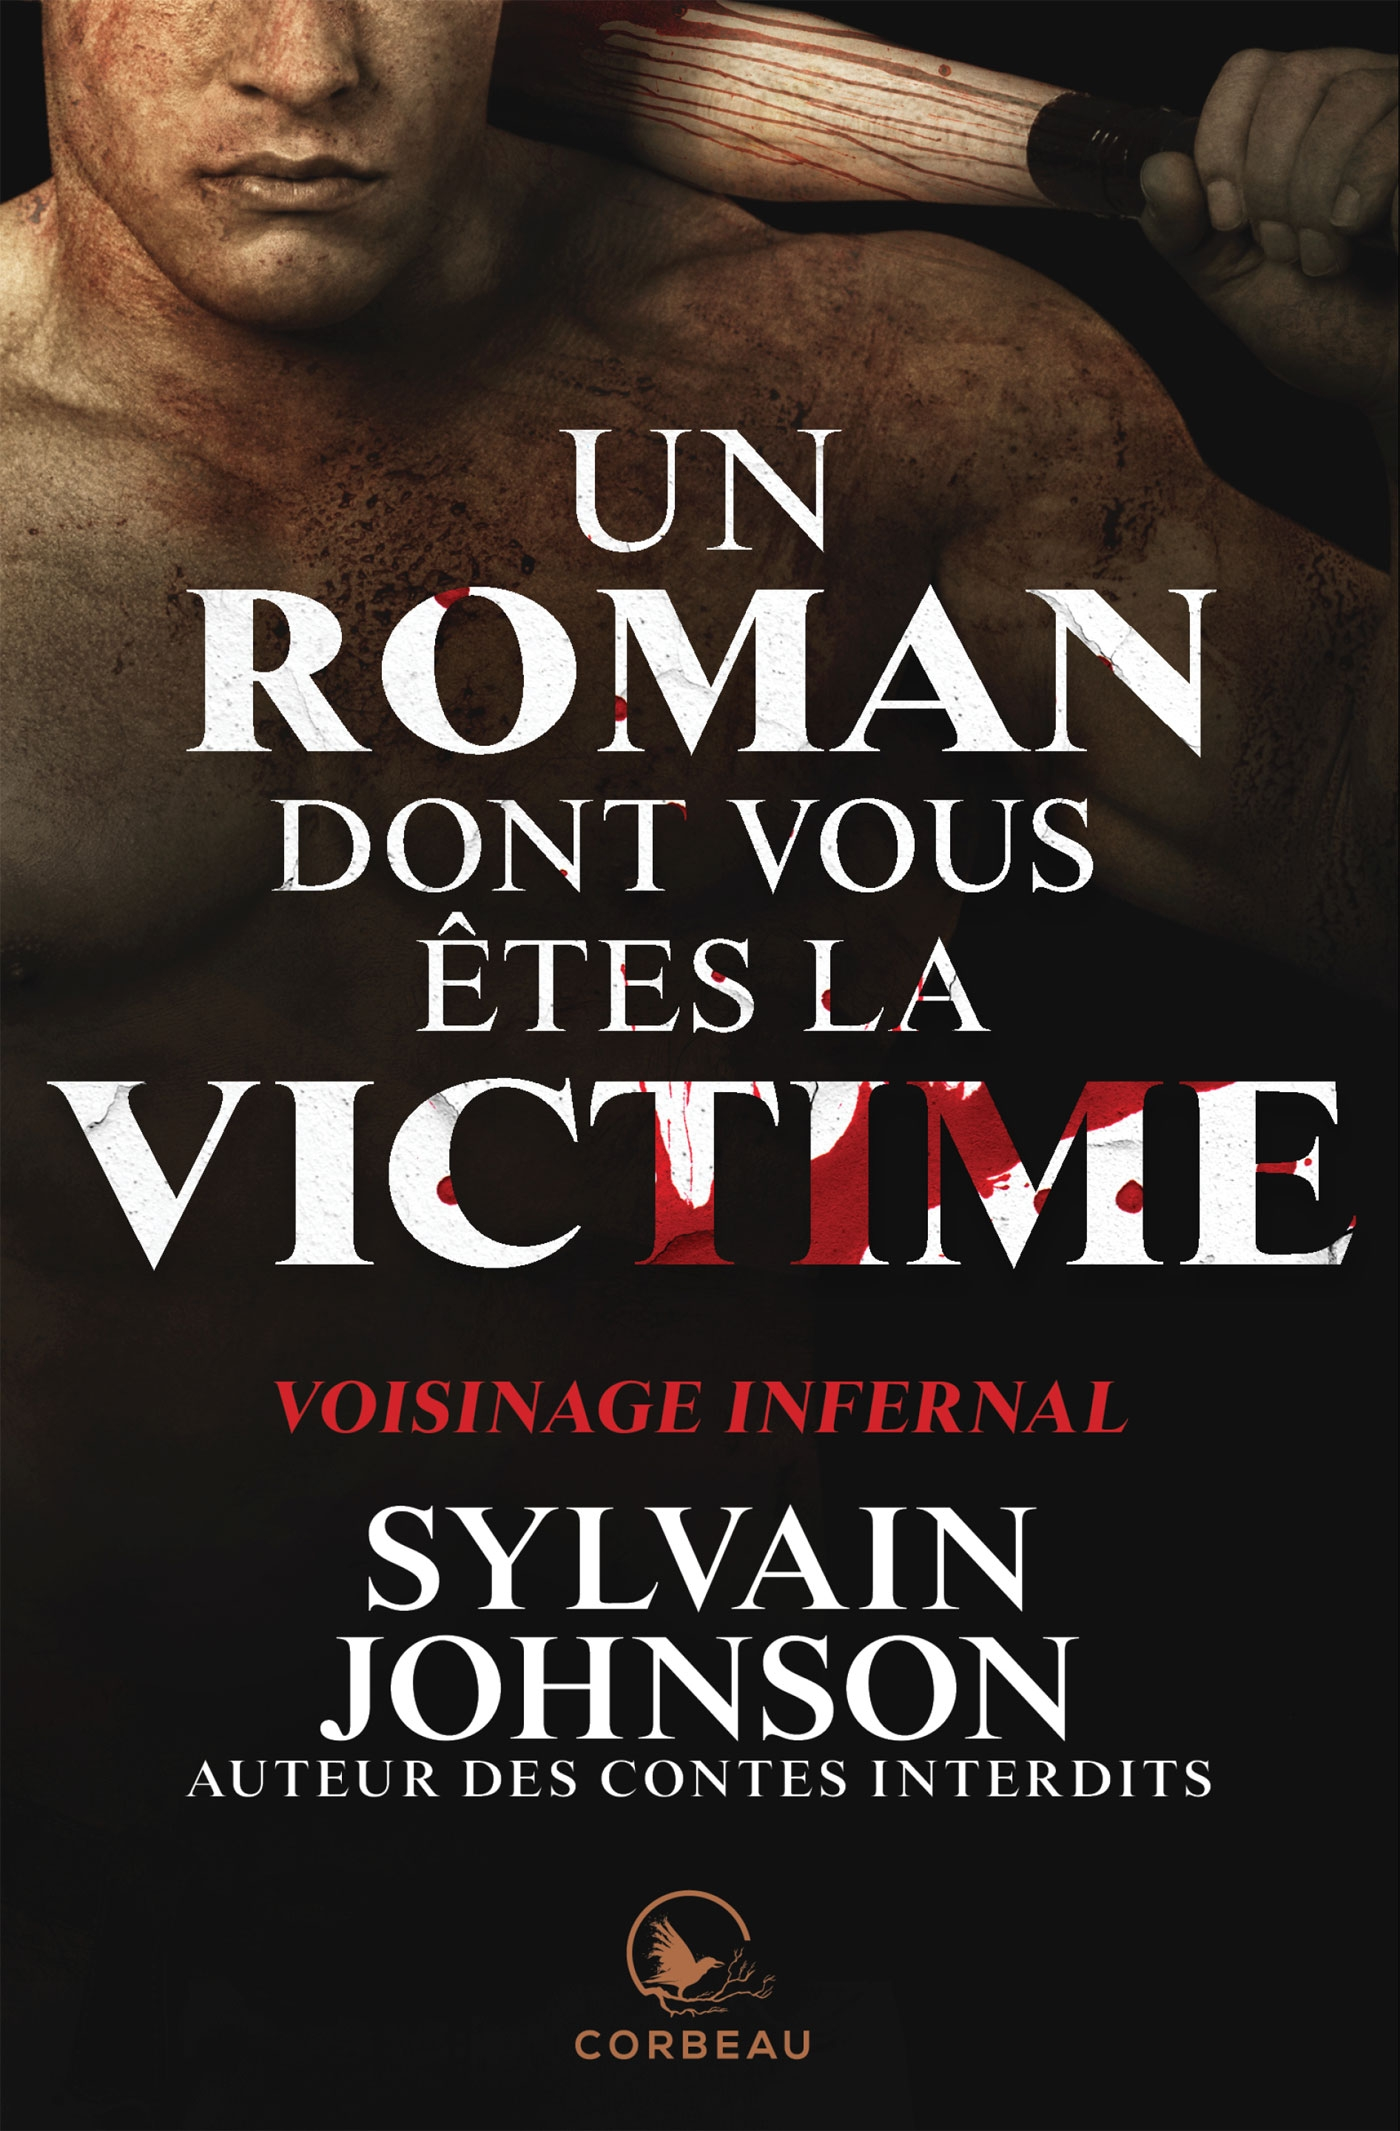 Vignette du livre Voi sinage infernal - Sylvain Johnson